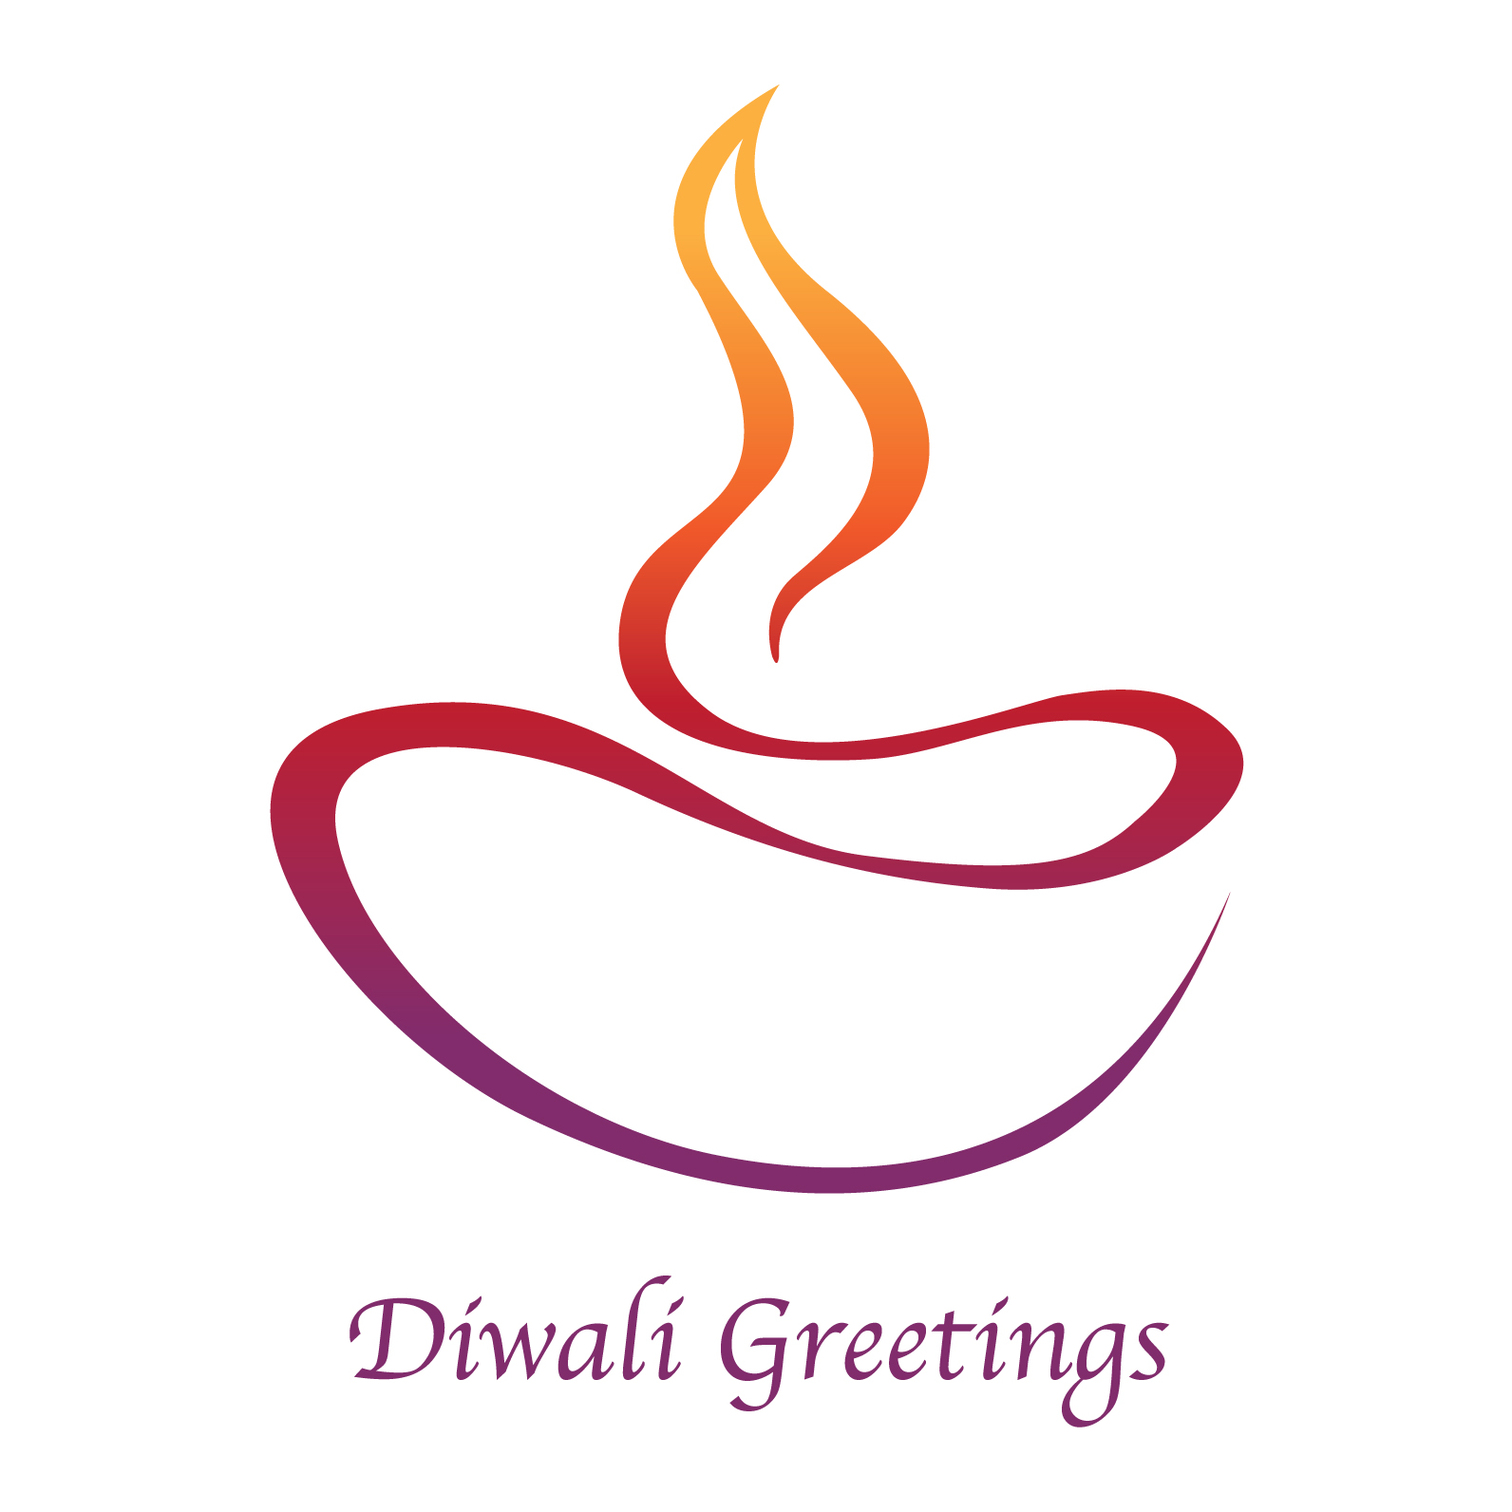 1512x1512 Diwali Black And White Clipart. Free Diwali Coloring Pages